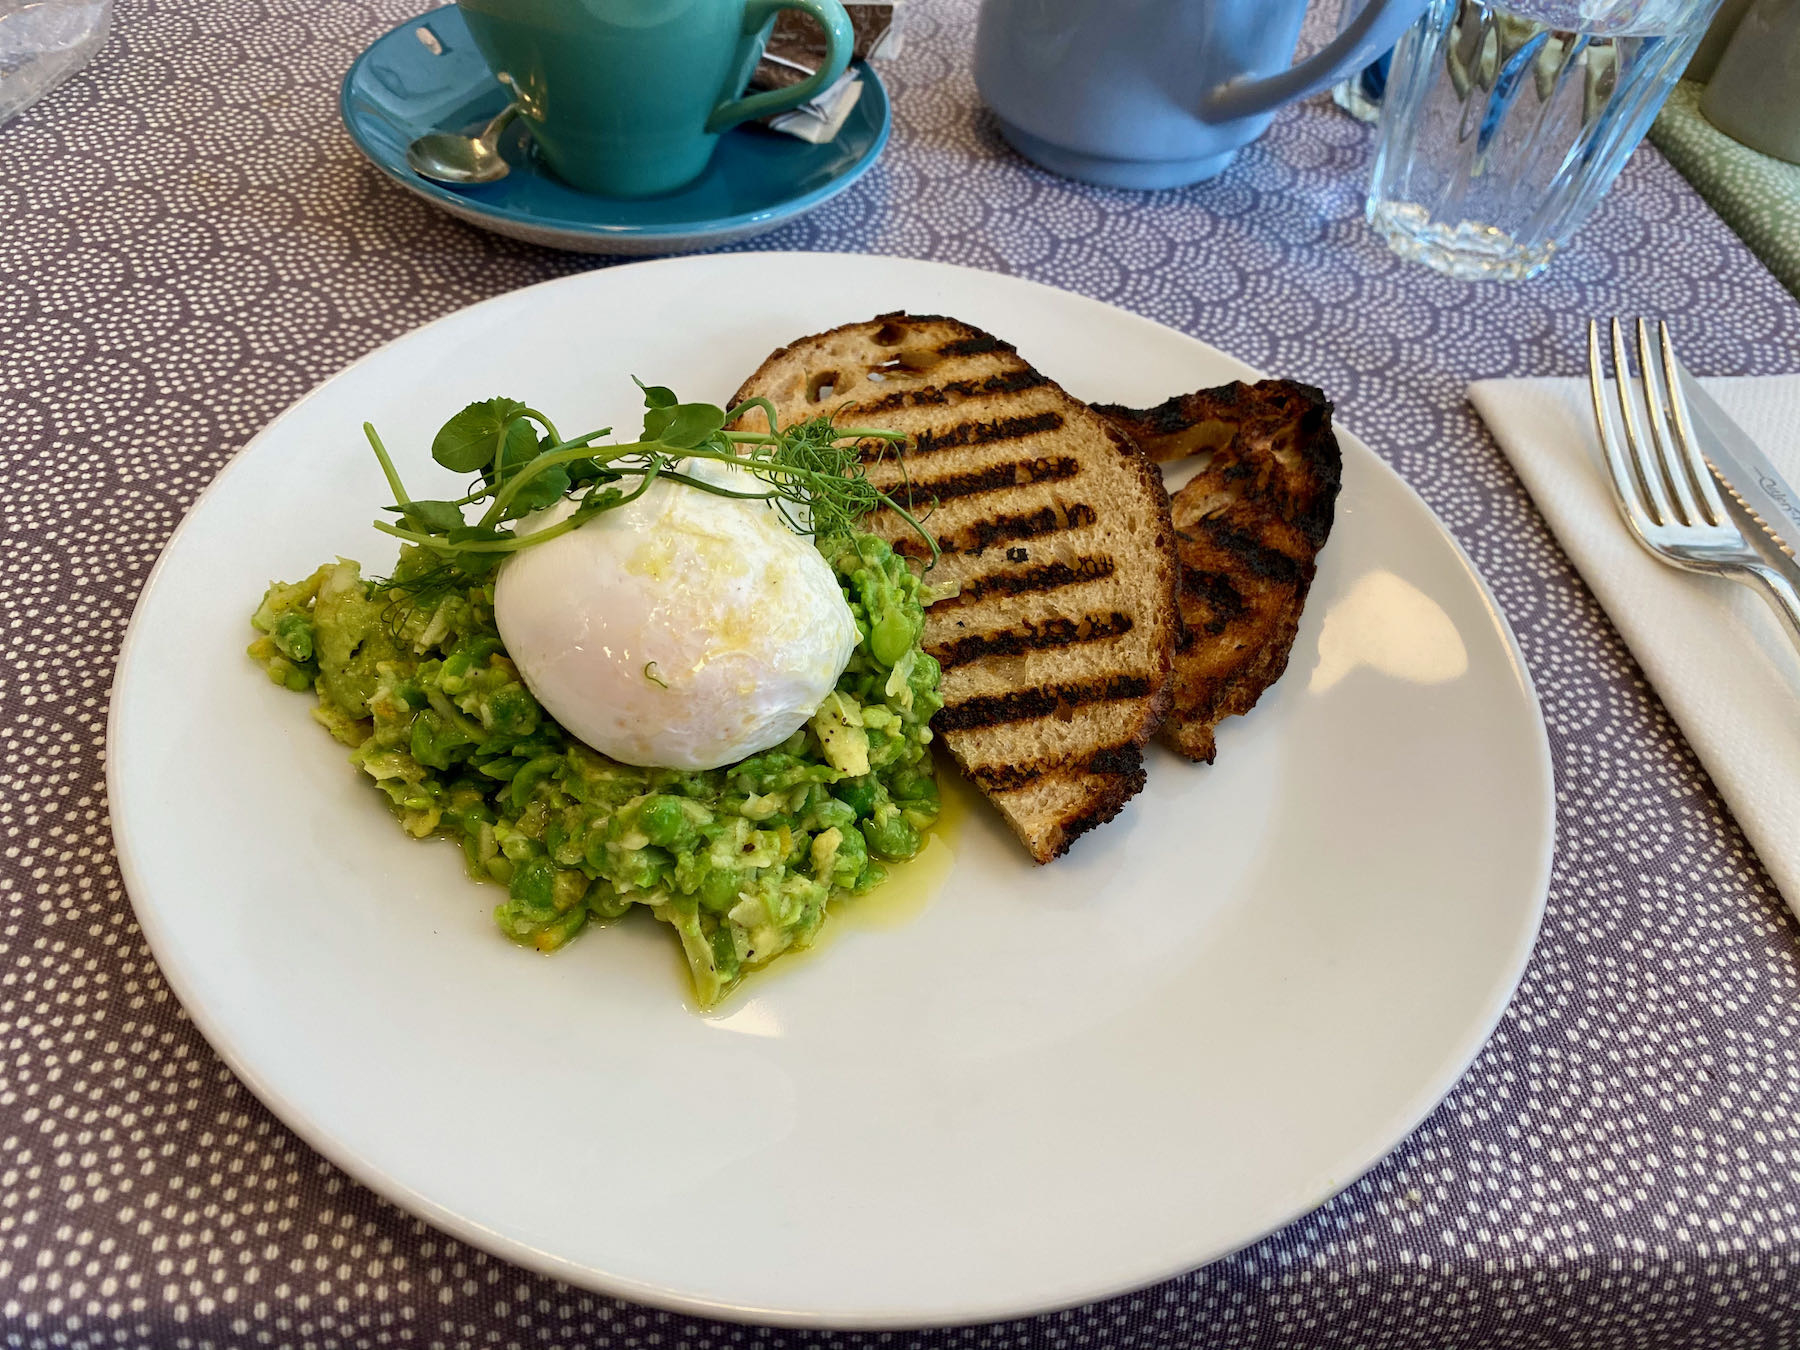 Plate with Smashed peas & avocado, lemon, Parmesan, poached egg, toast.